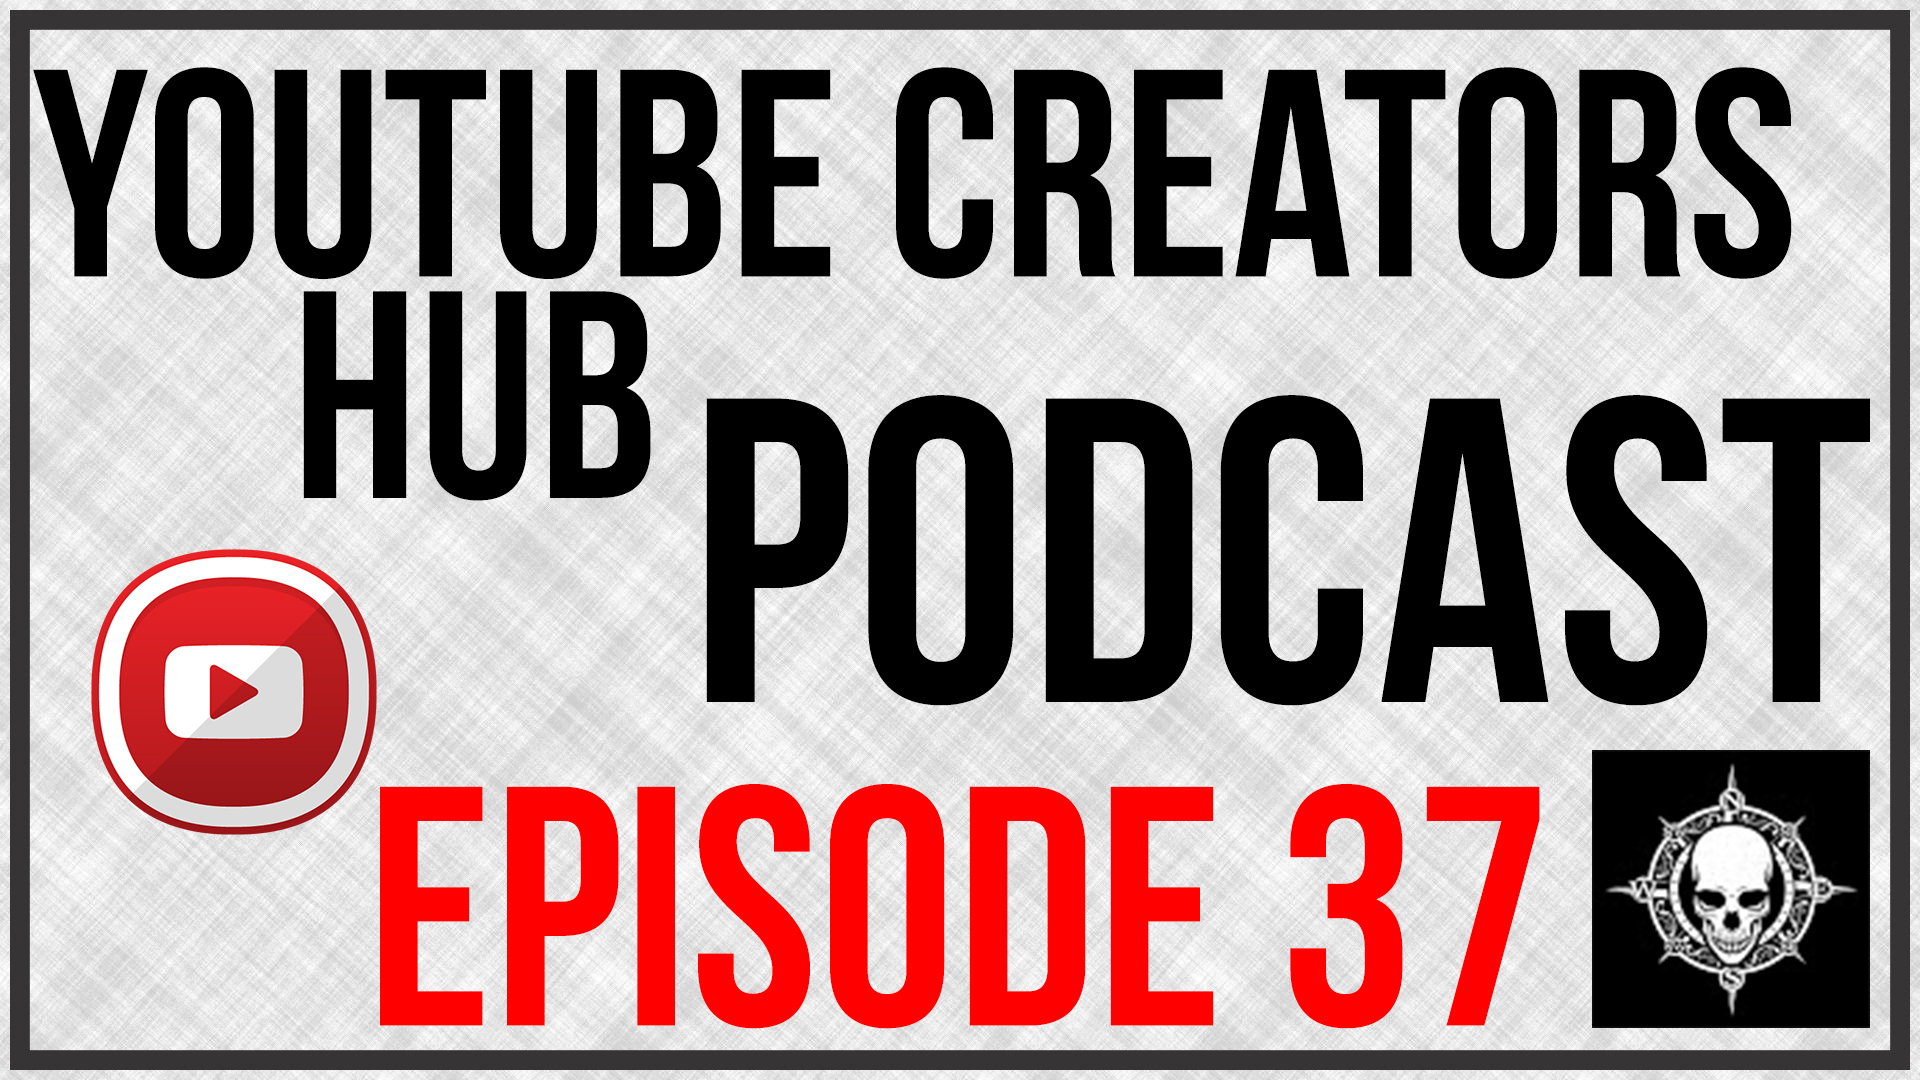 YouTube Creators Hub Podcast Episode 37